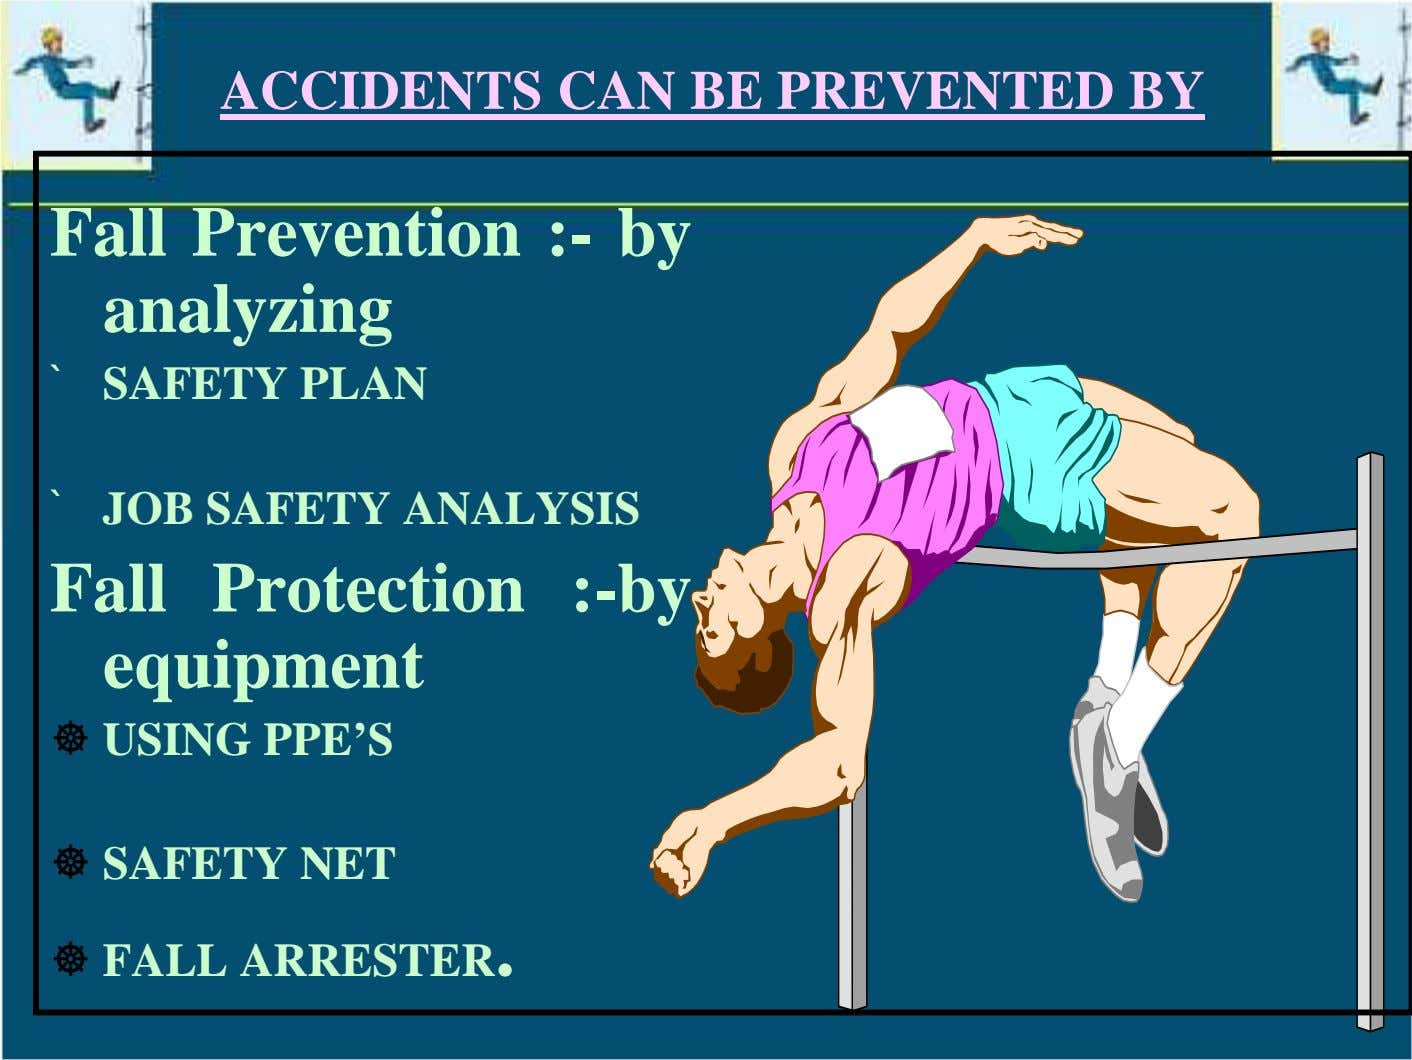 ACCIDENTS CAN BE PREVENTED BY Fall Prevention :- by analyzing ` SAFETY PLAN ` JOB